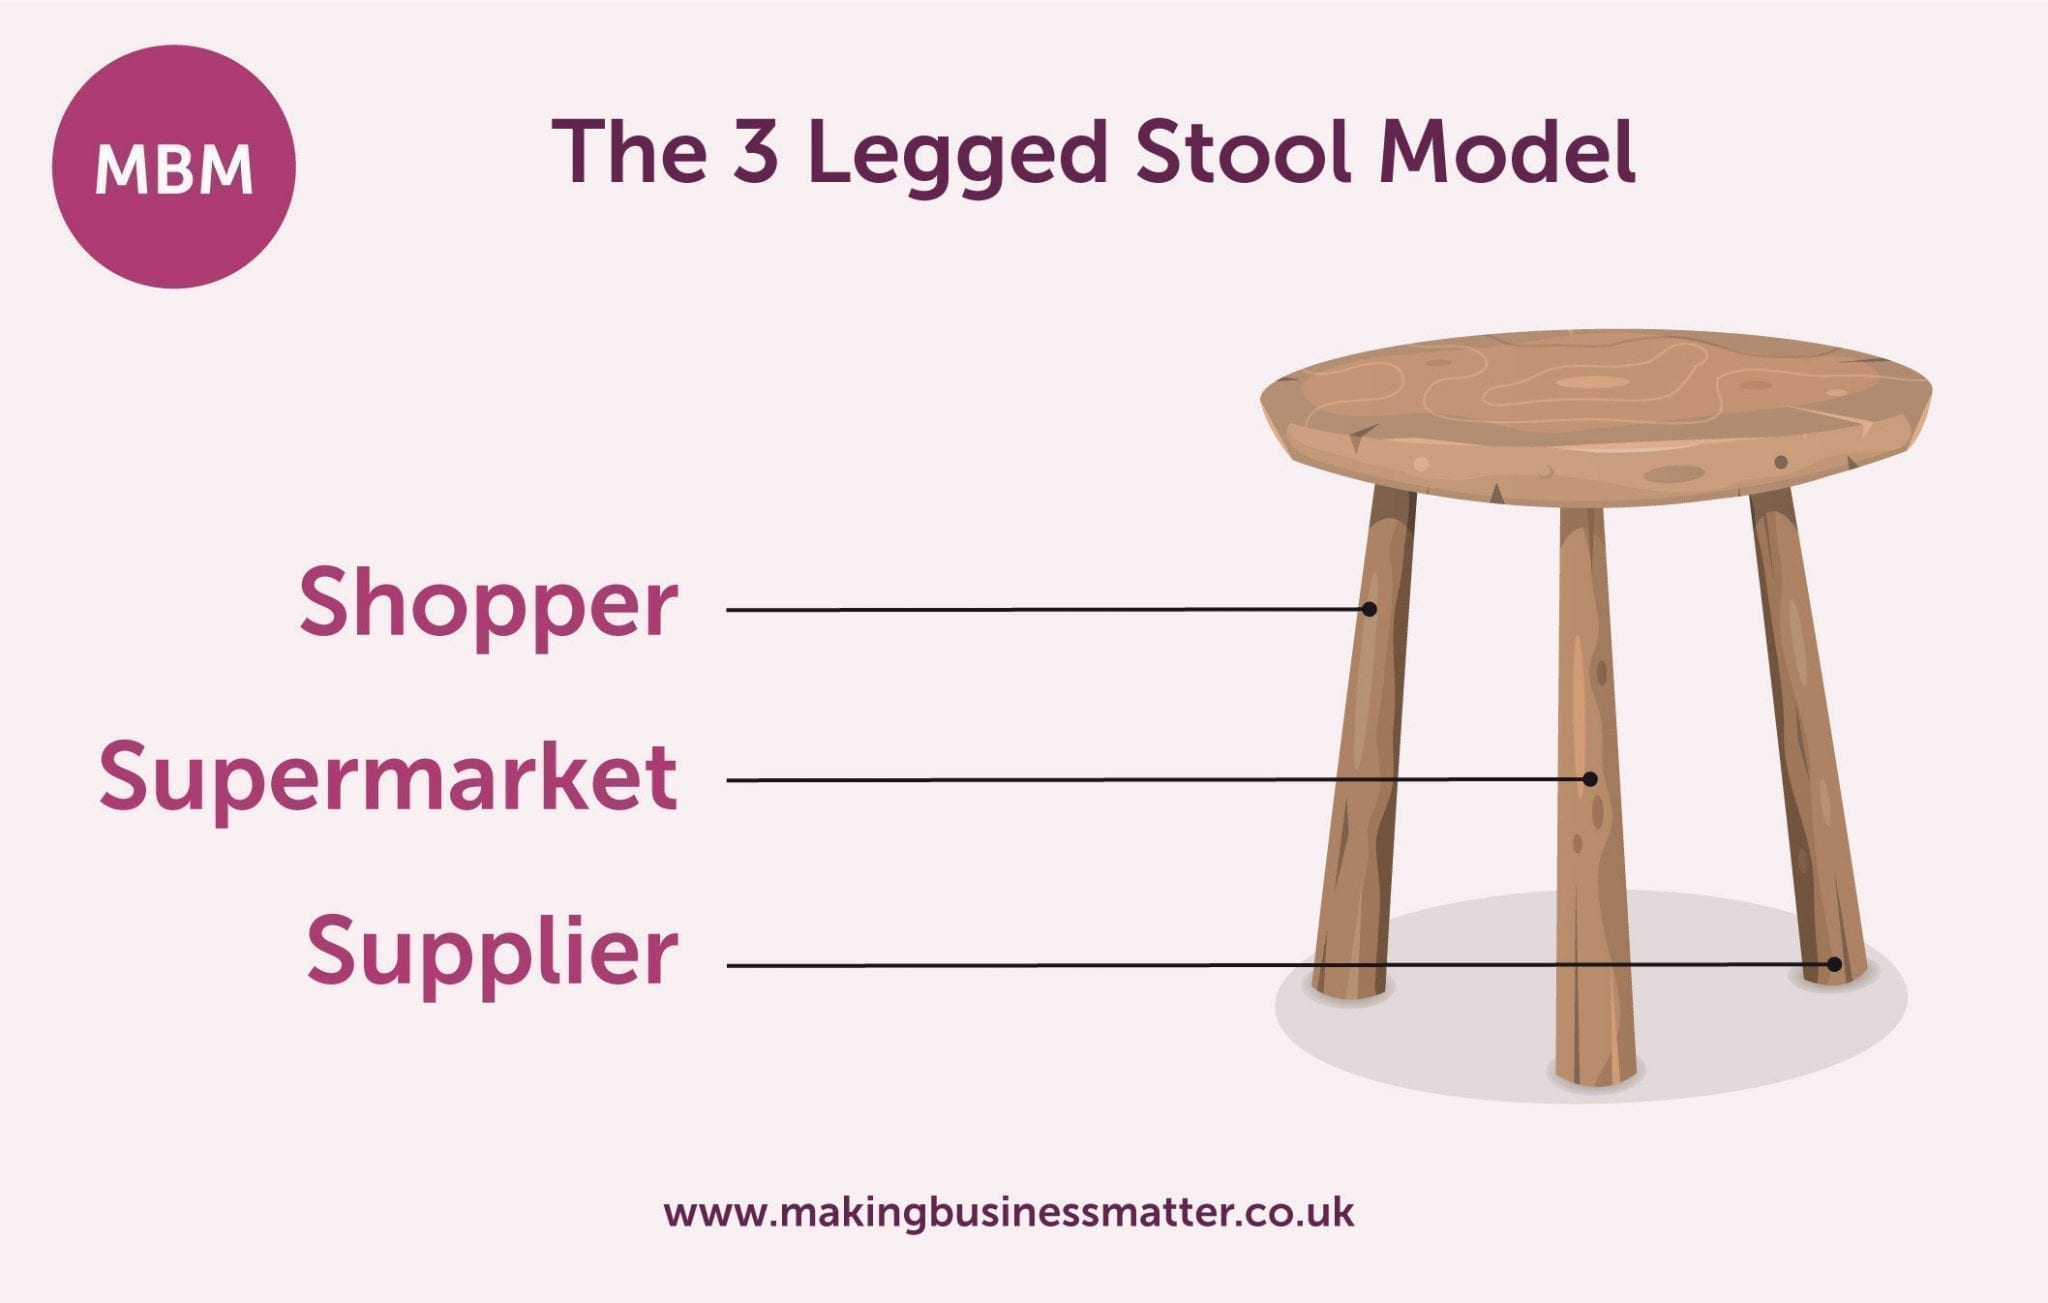 The 3 Legged Stool Model - Shopper, Supermarket, Supplier